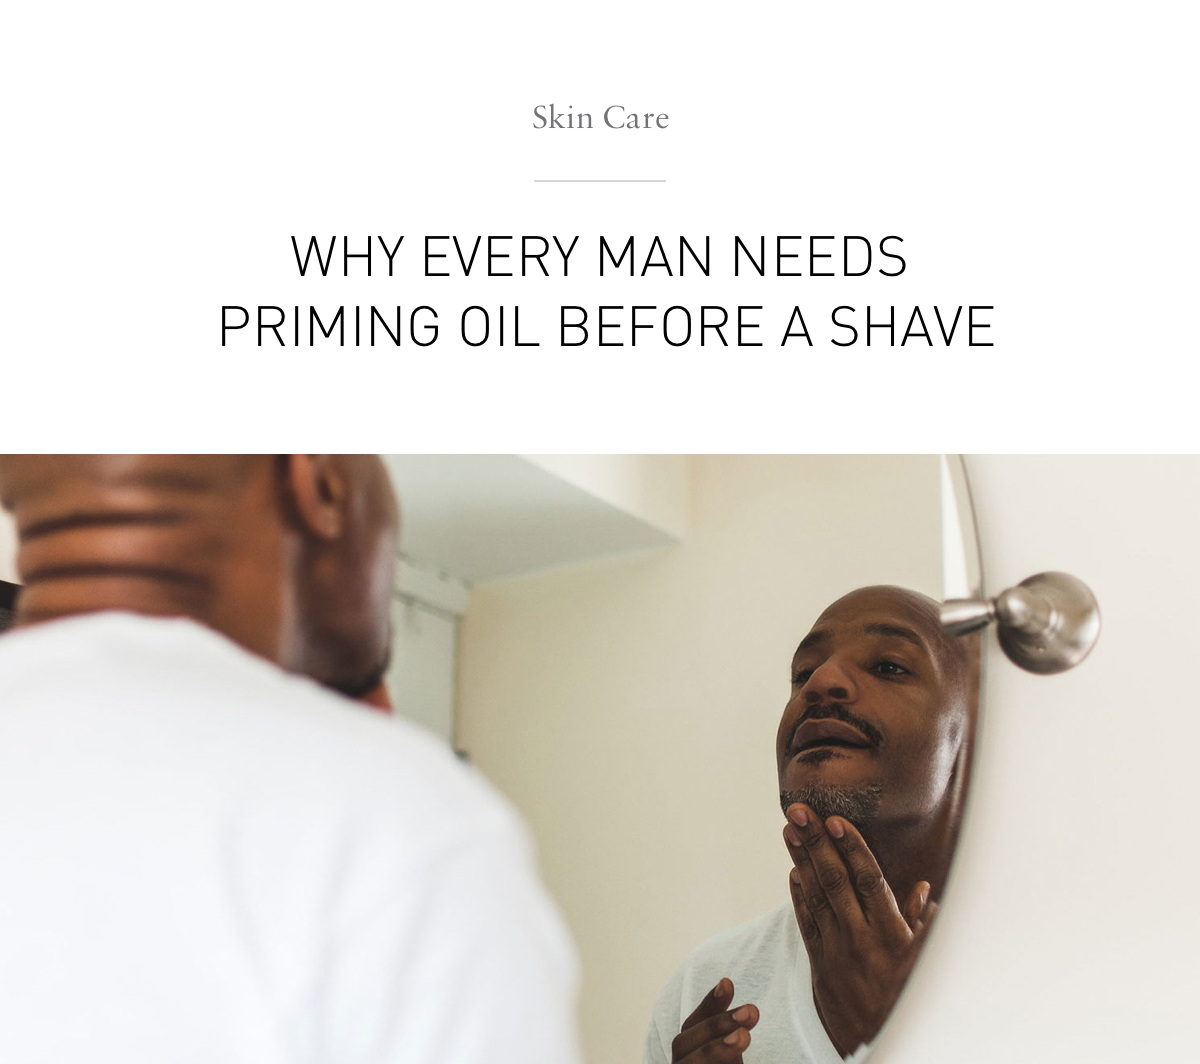 Why Every Man Needs Priming Oil Before A Shave